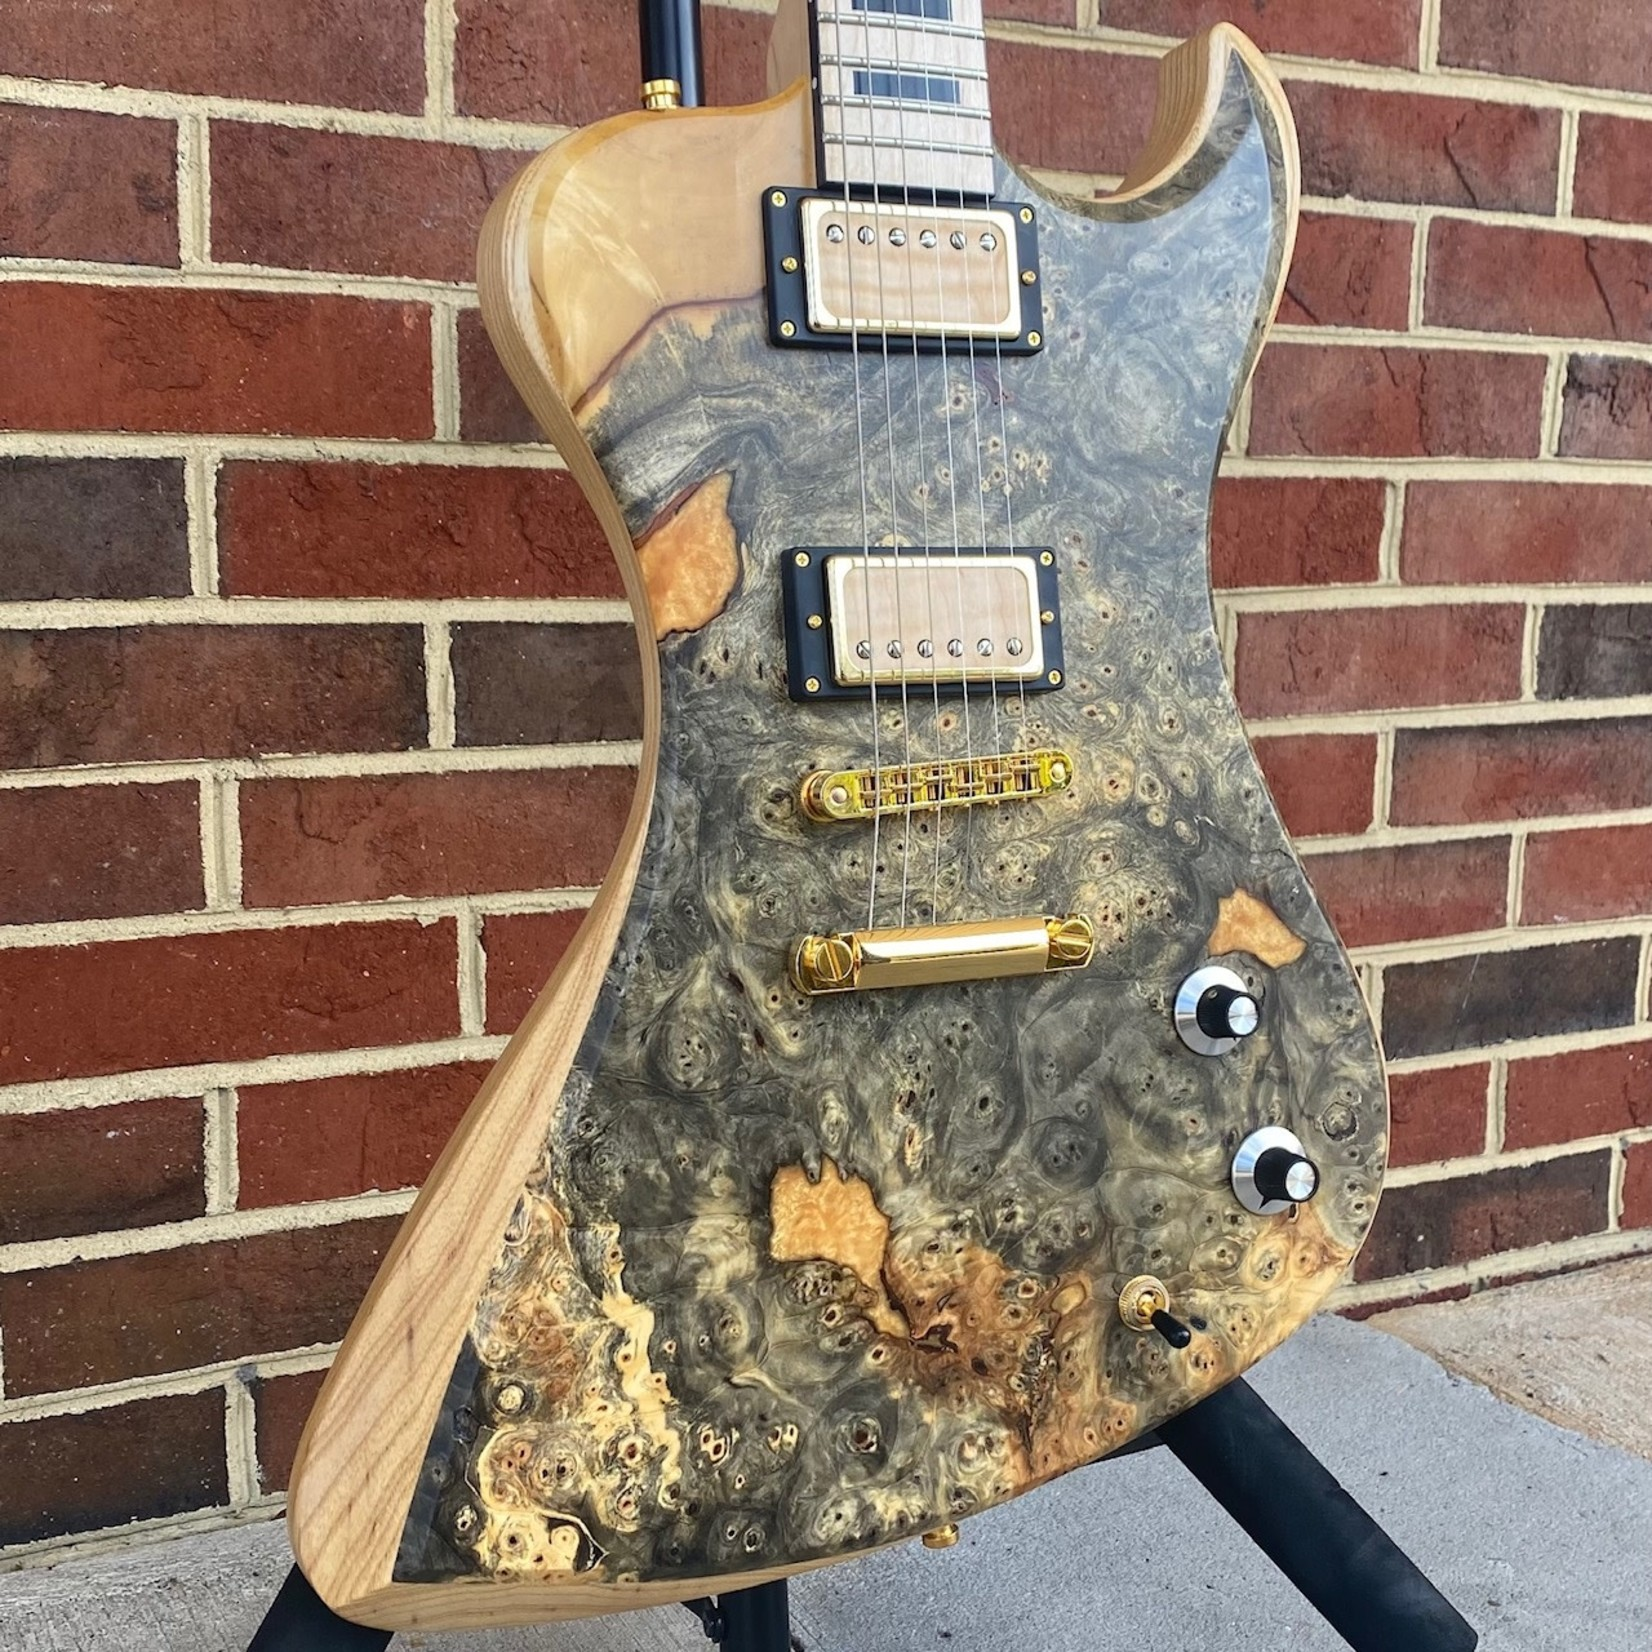 Dunable Guitars Dunable Guitars USA Special Stash #2 - R2, One Piece Buckeye Burl Top w/ Gold Sparkle Resin Fill, Swamp Ash Body, Maple Neck, Maple Fretboard, Block Inlays, Gold Hardware, Locking Tuners, Hardshell Case